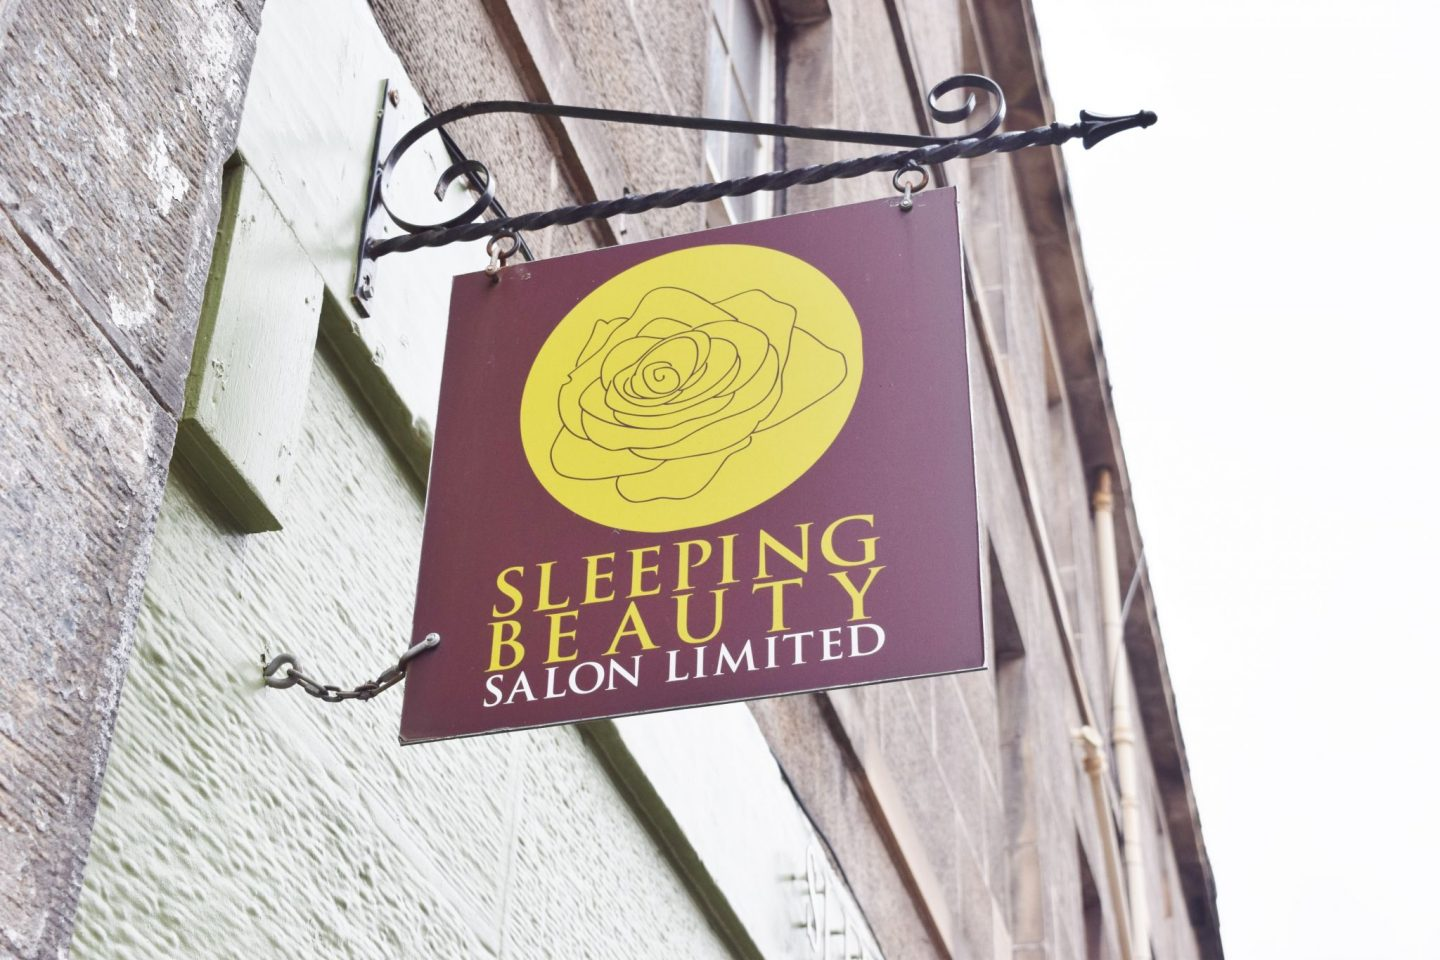 sleeping beauty salon edinburgh